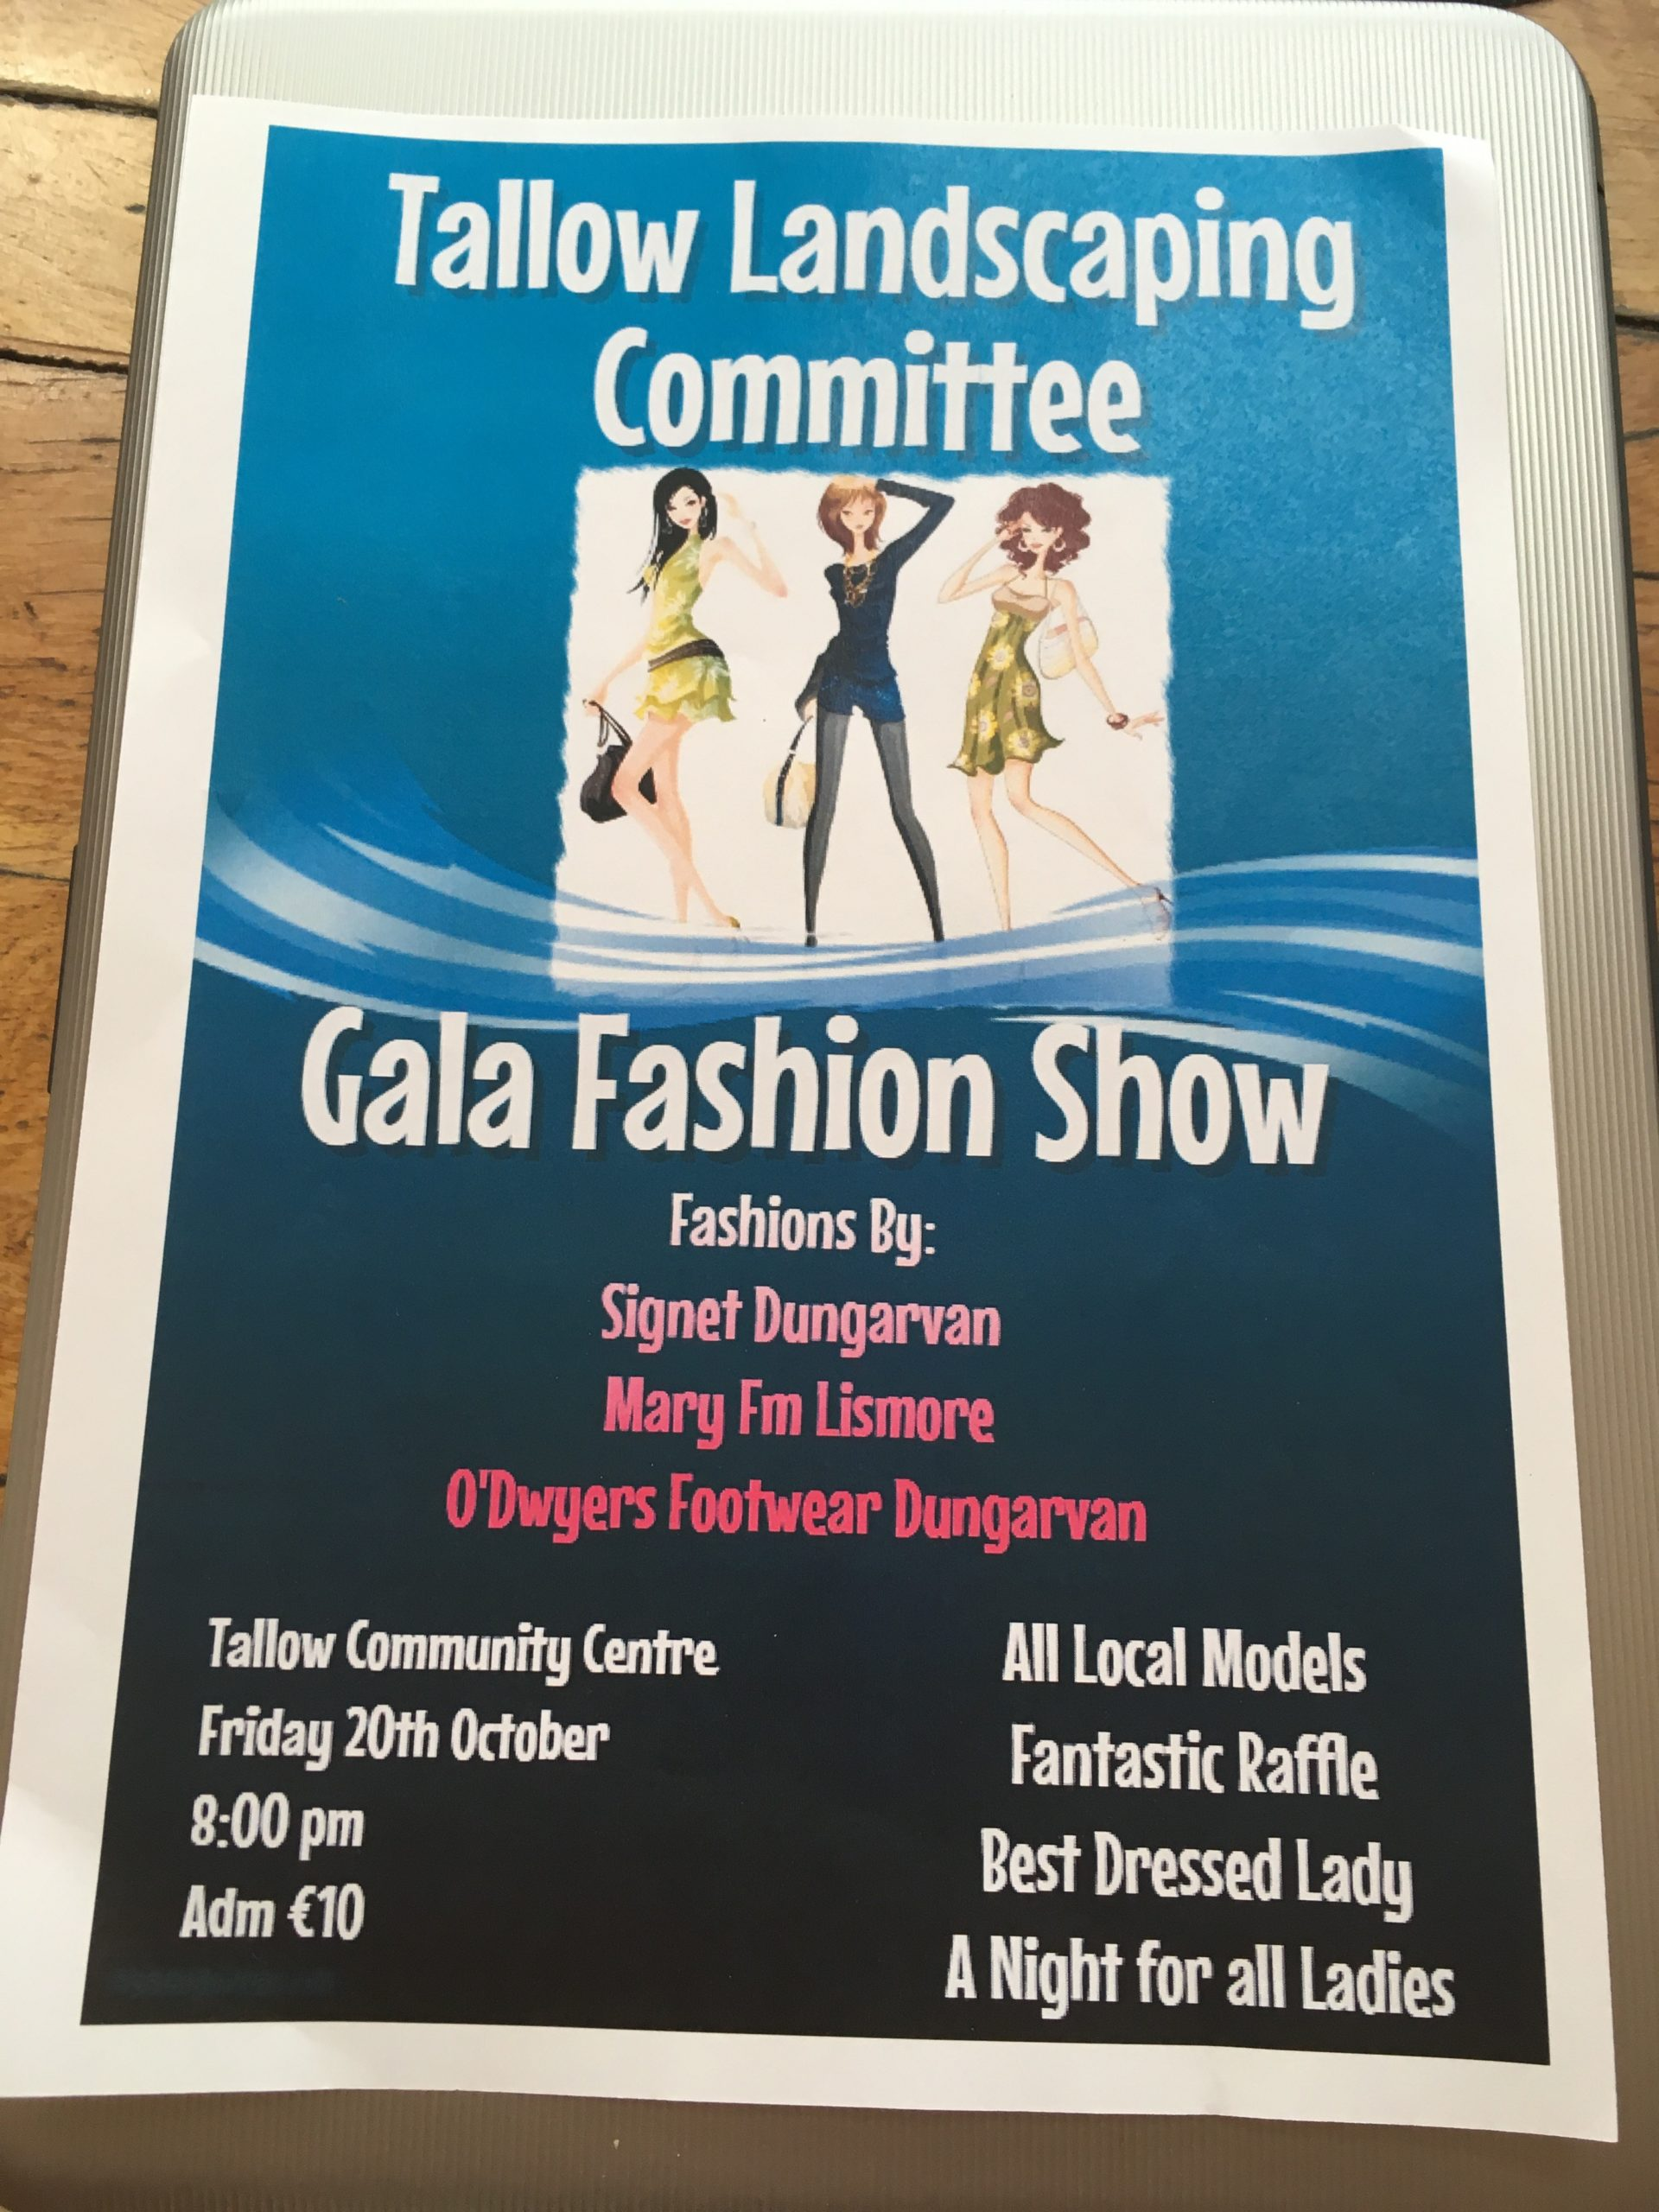 Fashion Show on Friday October 20th